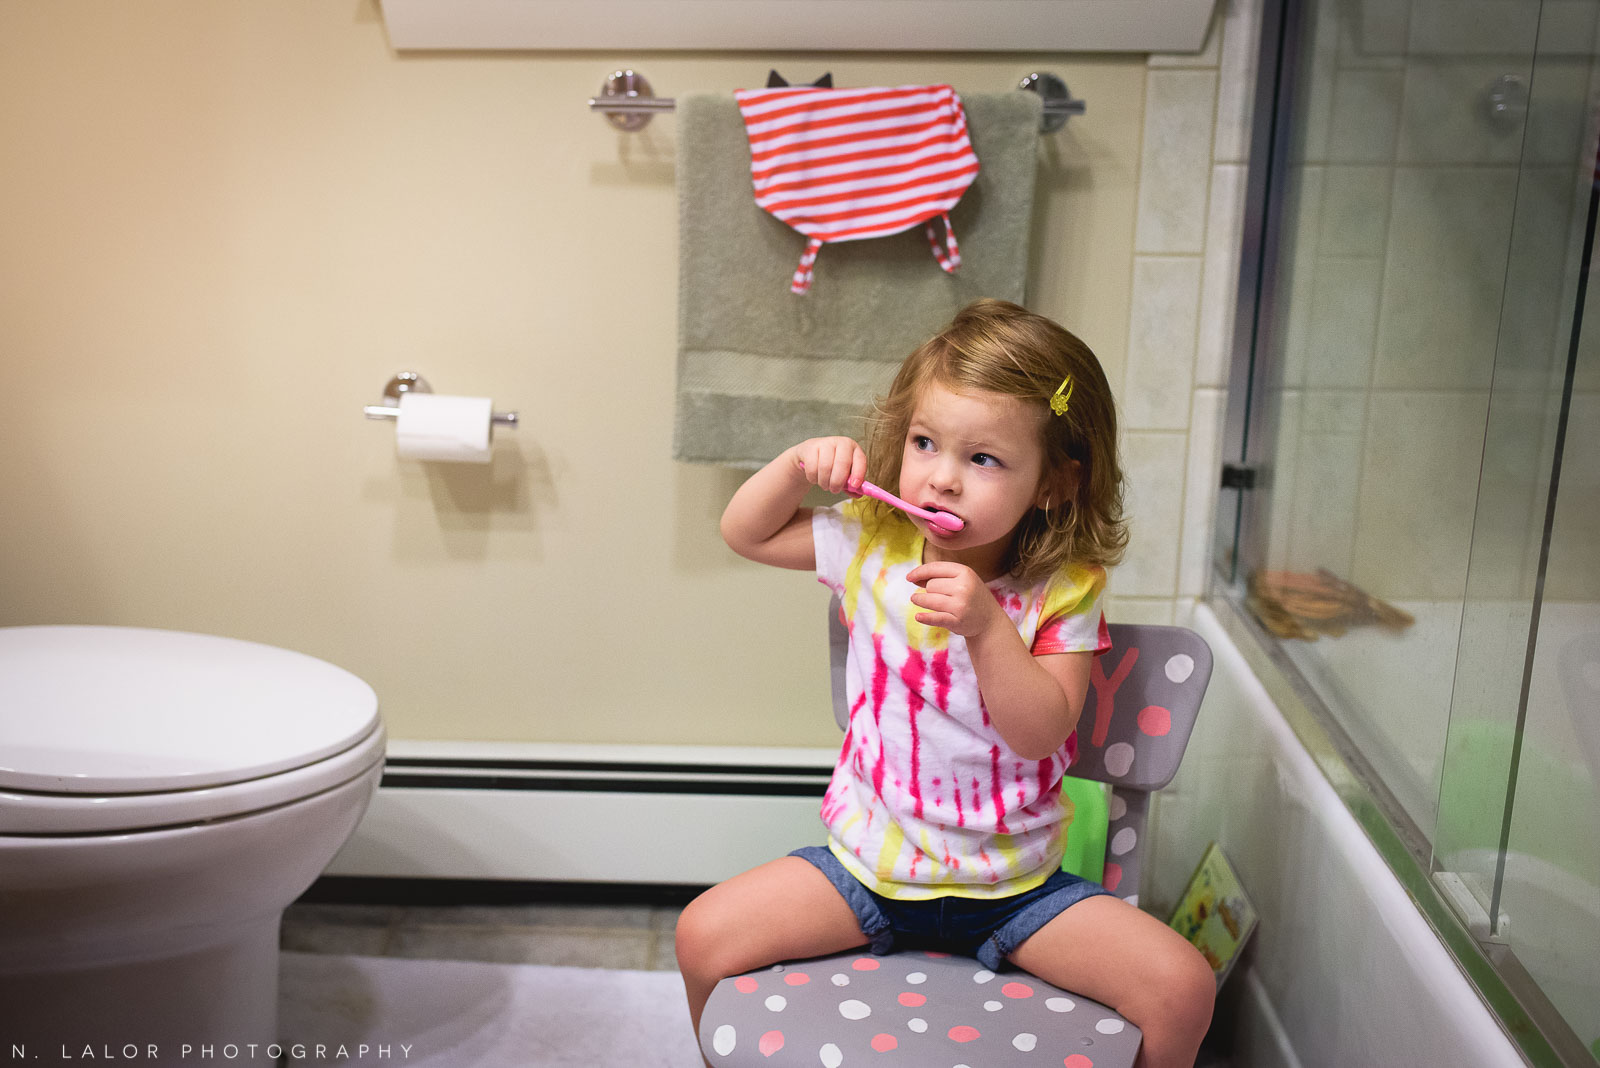 2-year old girl brushing teeth in the morning. Documentary photo by N. Lalor Photography.